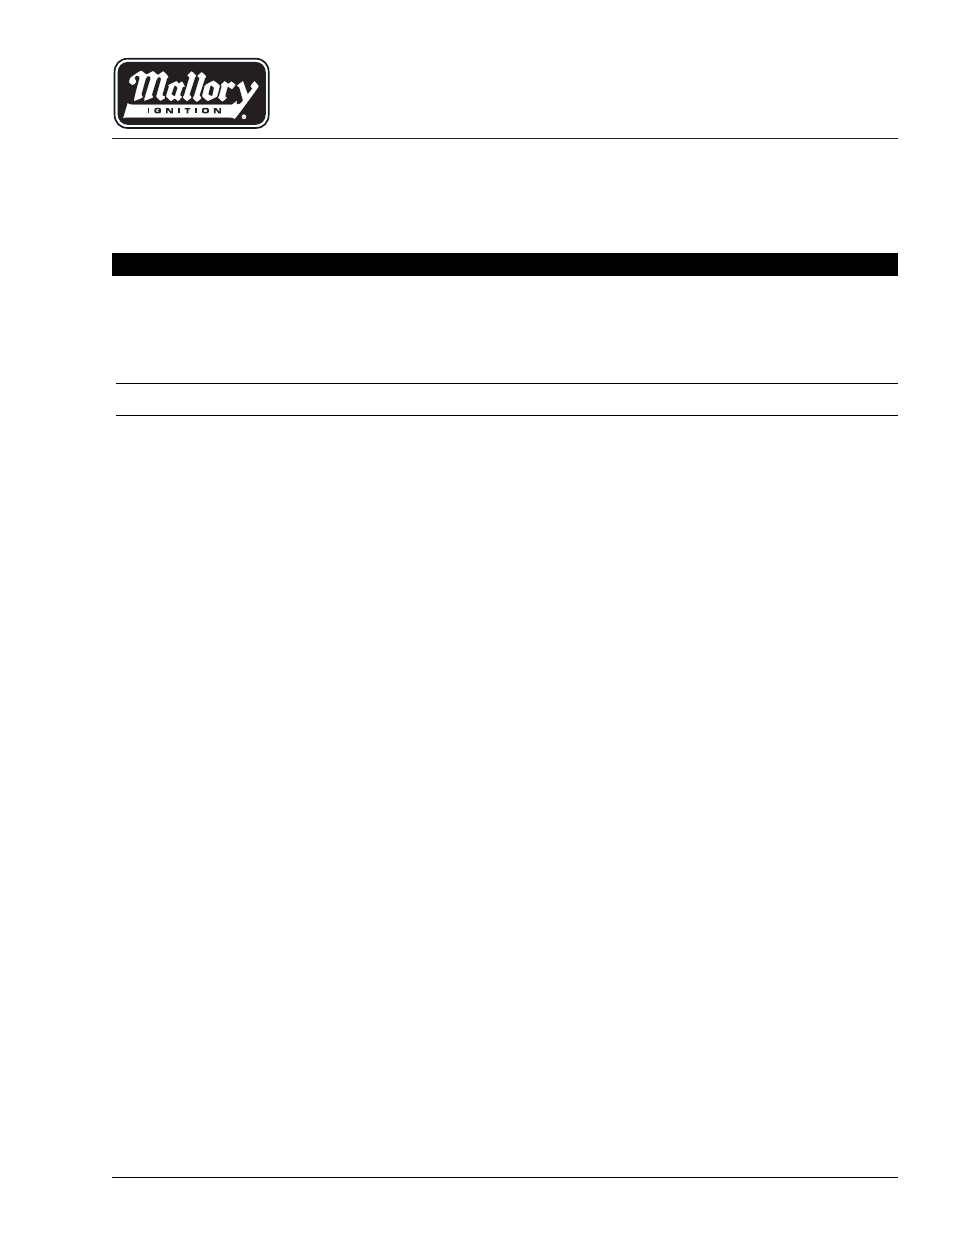 mallory ignition mallory unilite distributor page1 mallory ignition mallory unilite distributor user manual 13 unilite wiring diagram at aneh.co